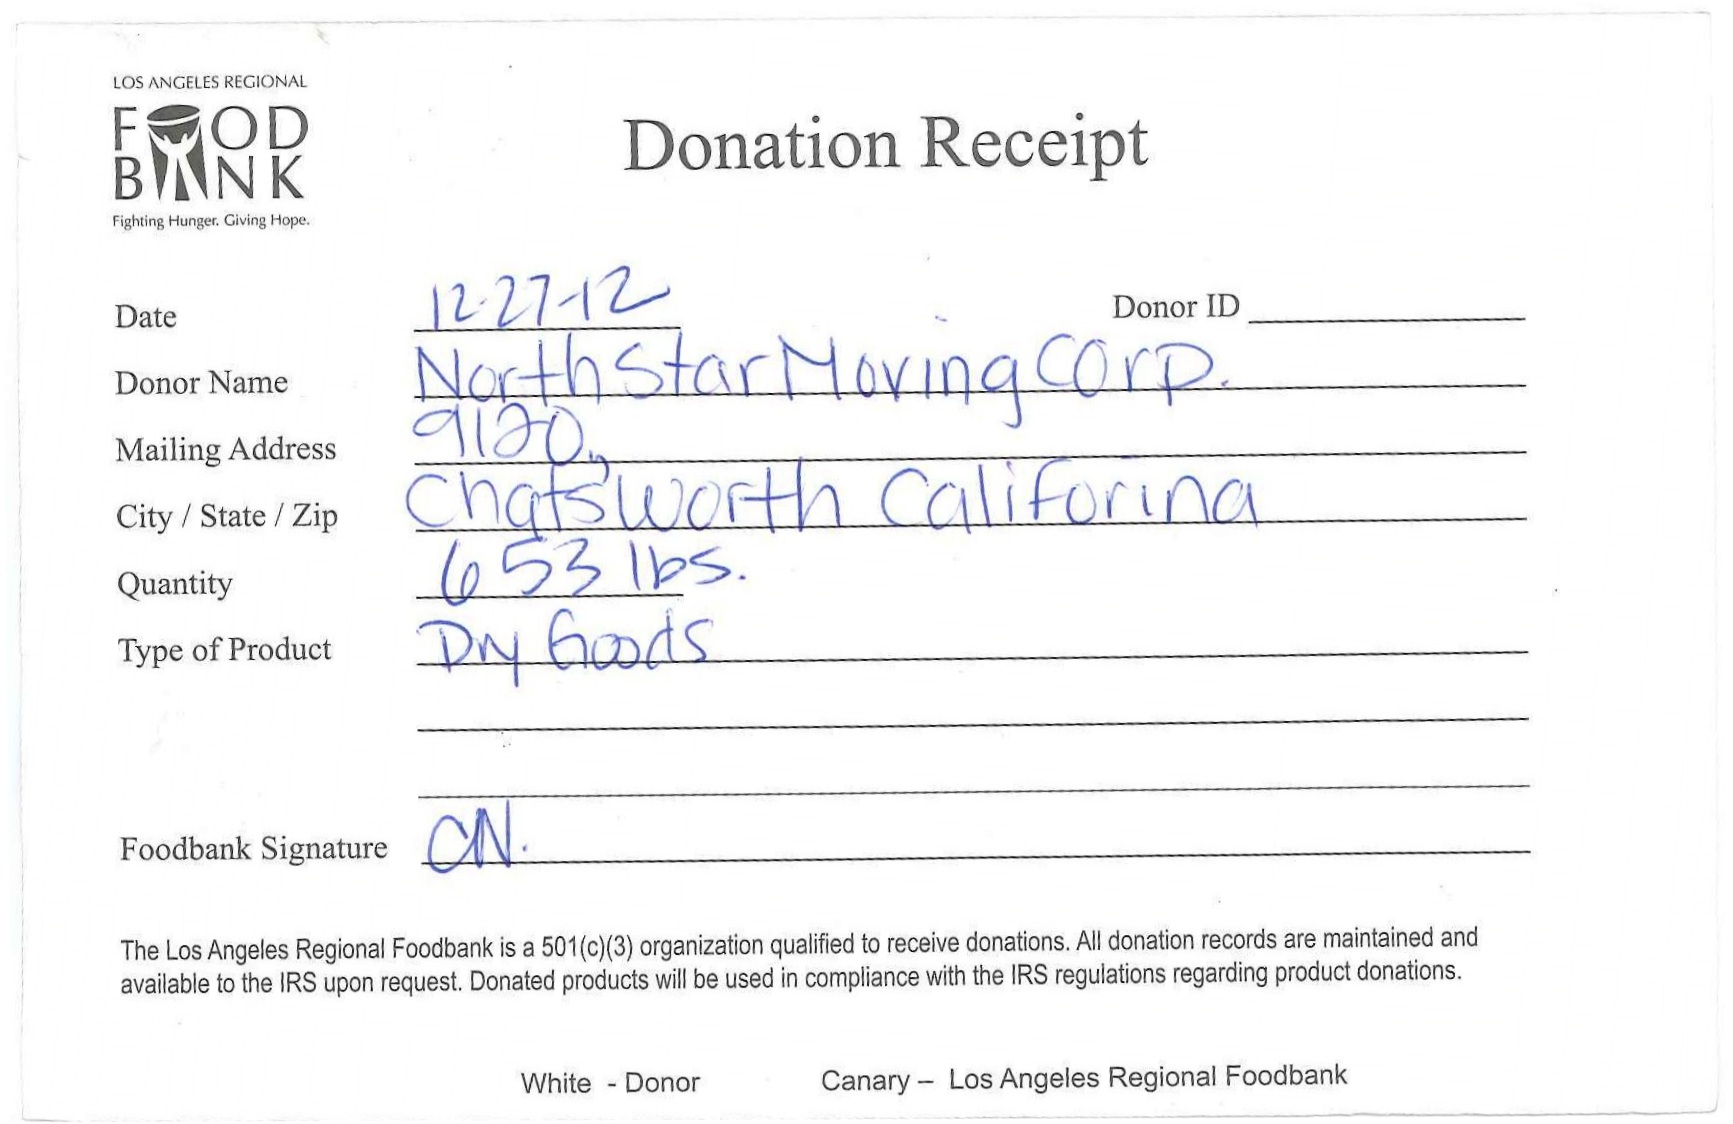 Weight Receipt From The La Regional Food Bank